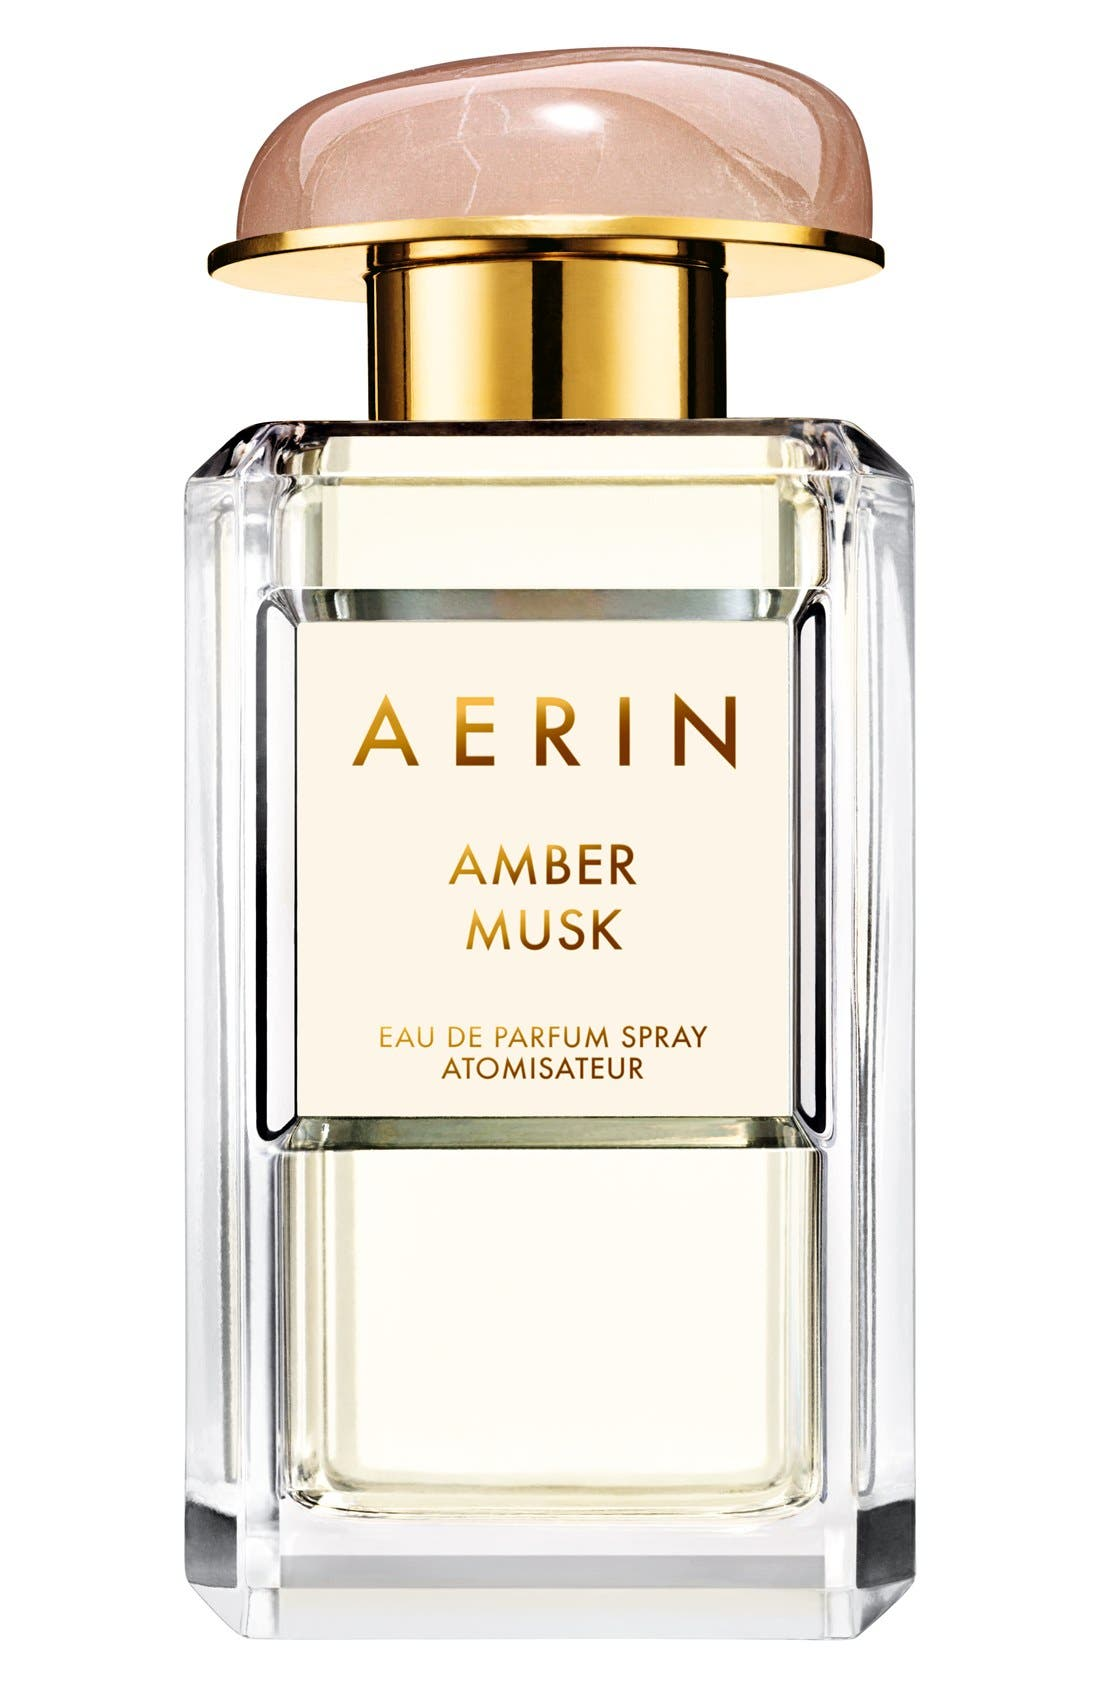 Aerin Beauty Amber Musk Eau De Parfum Spray